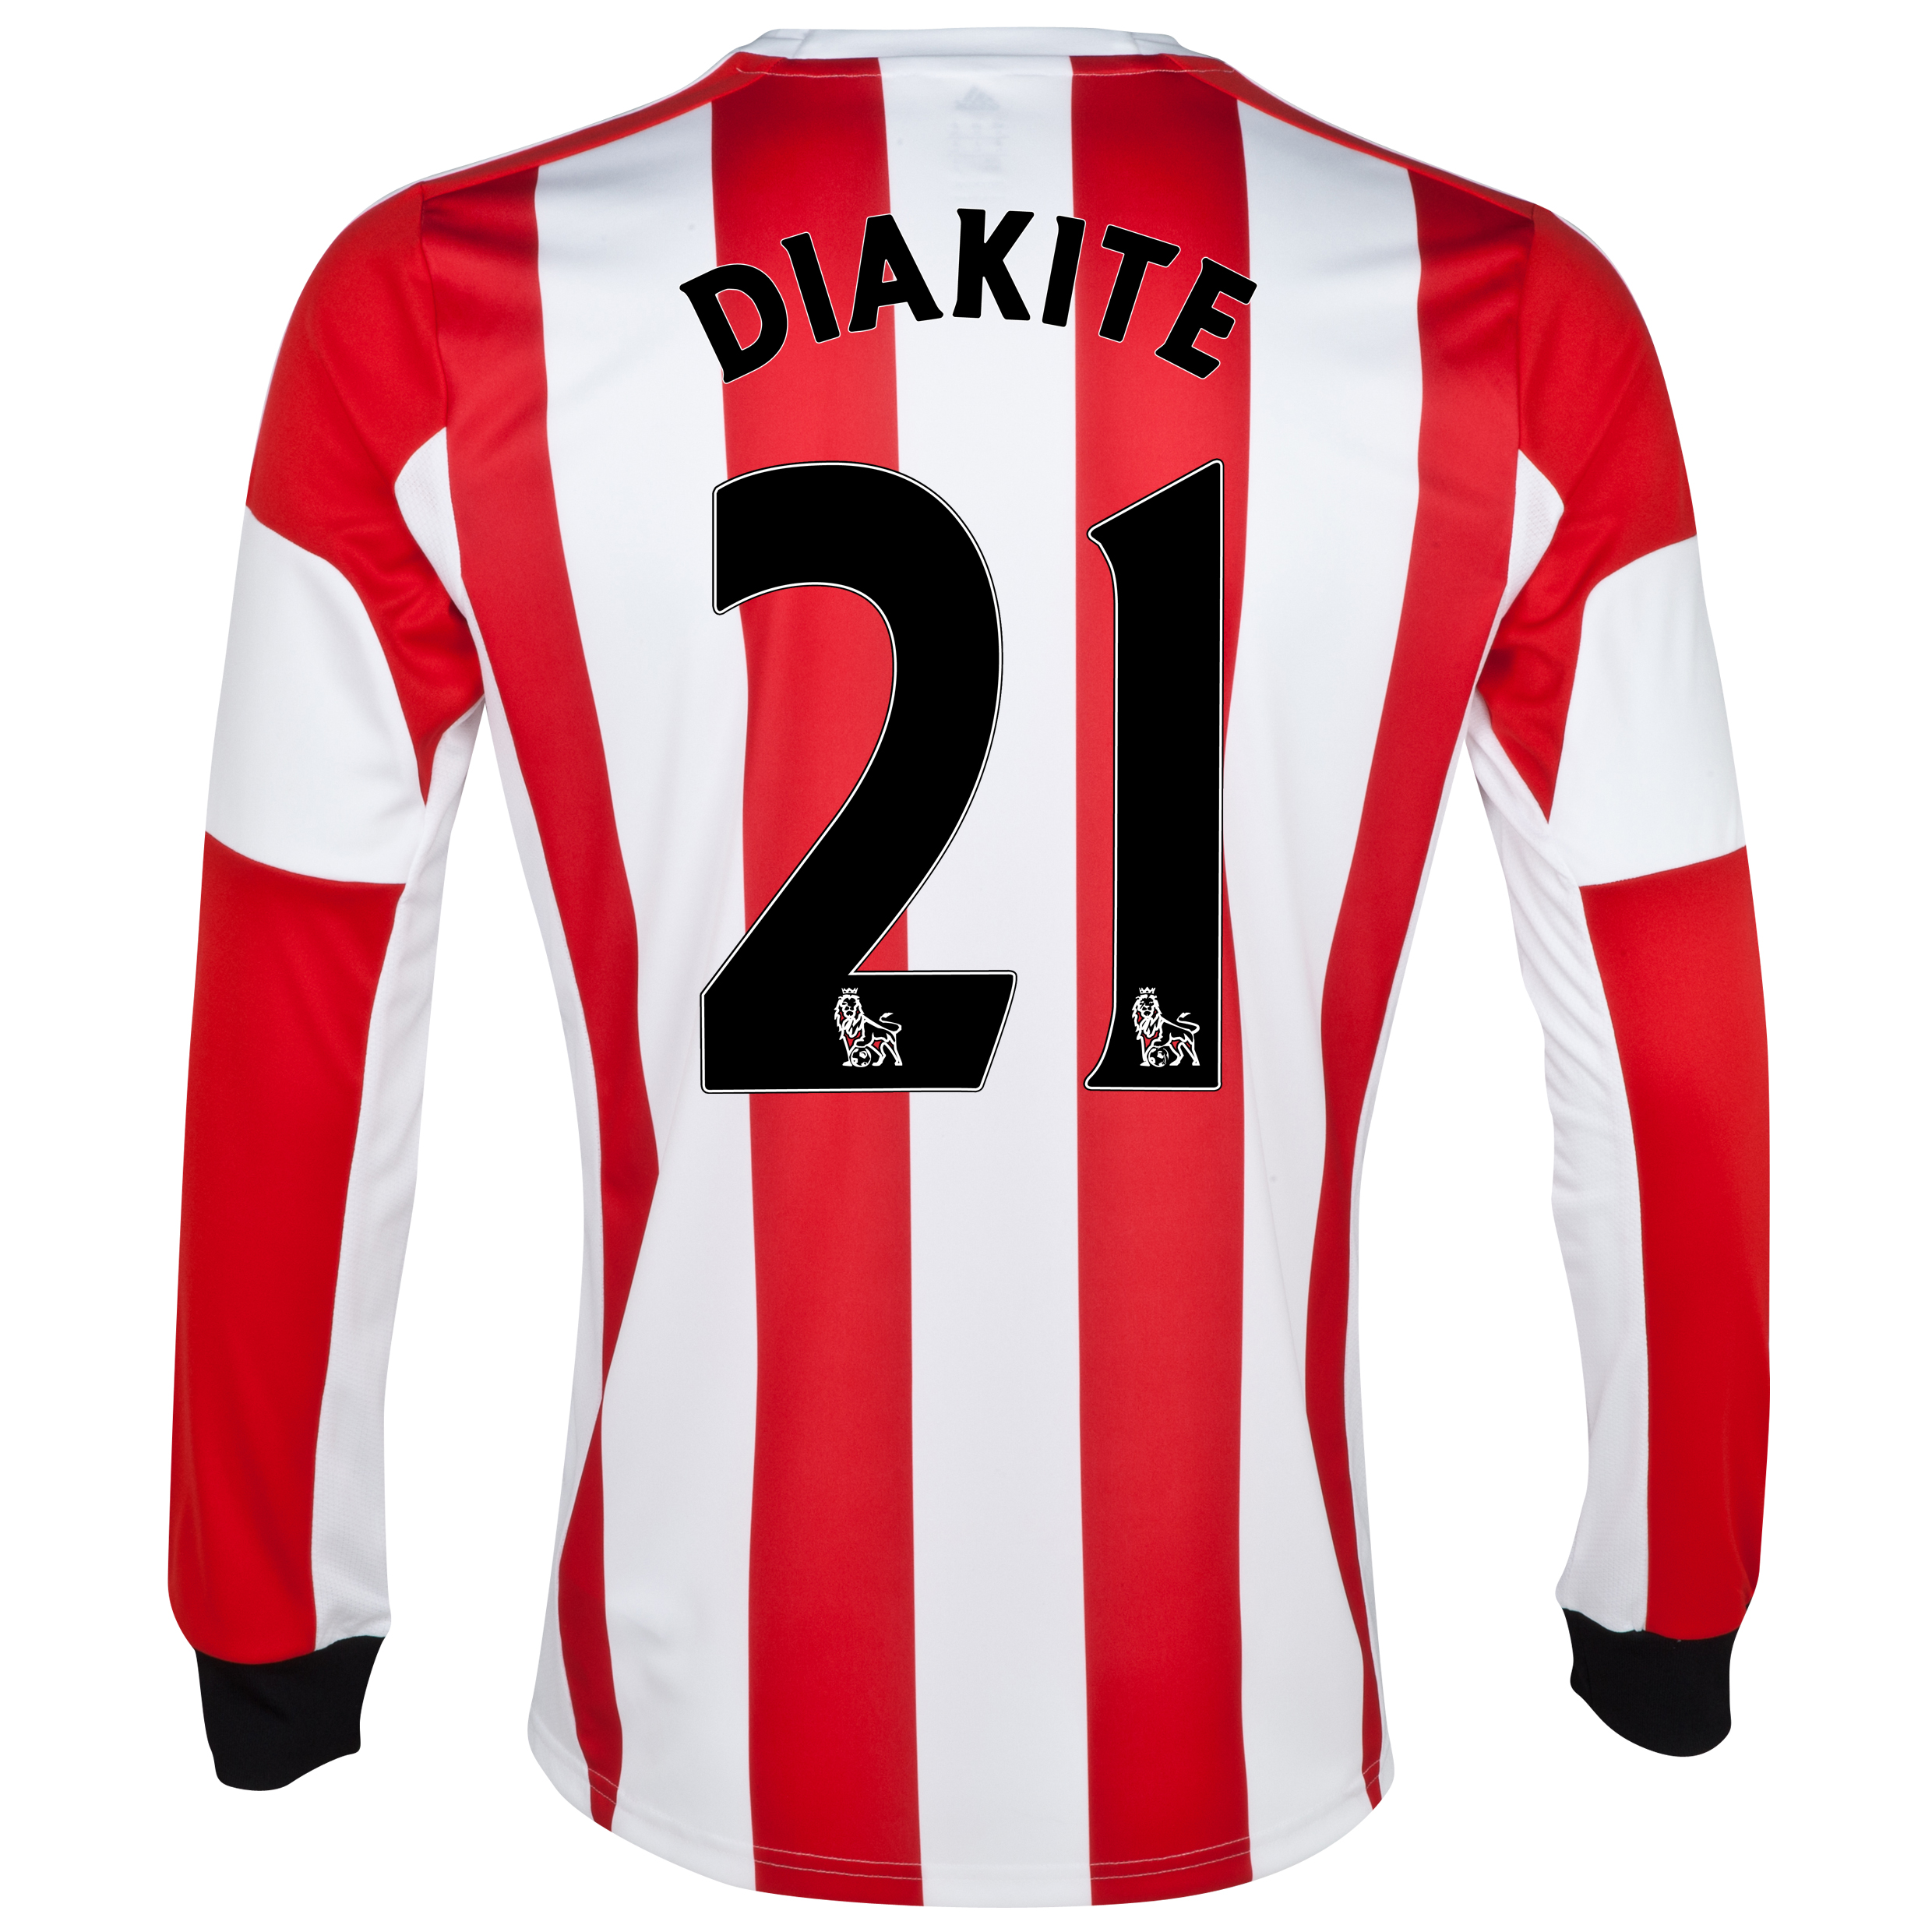 Sunderland Home Shirt 2013/14 - Long Sleeved with Diakite 21 printing